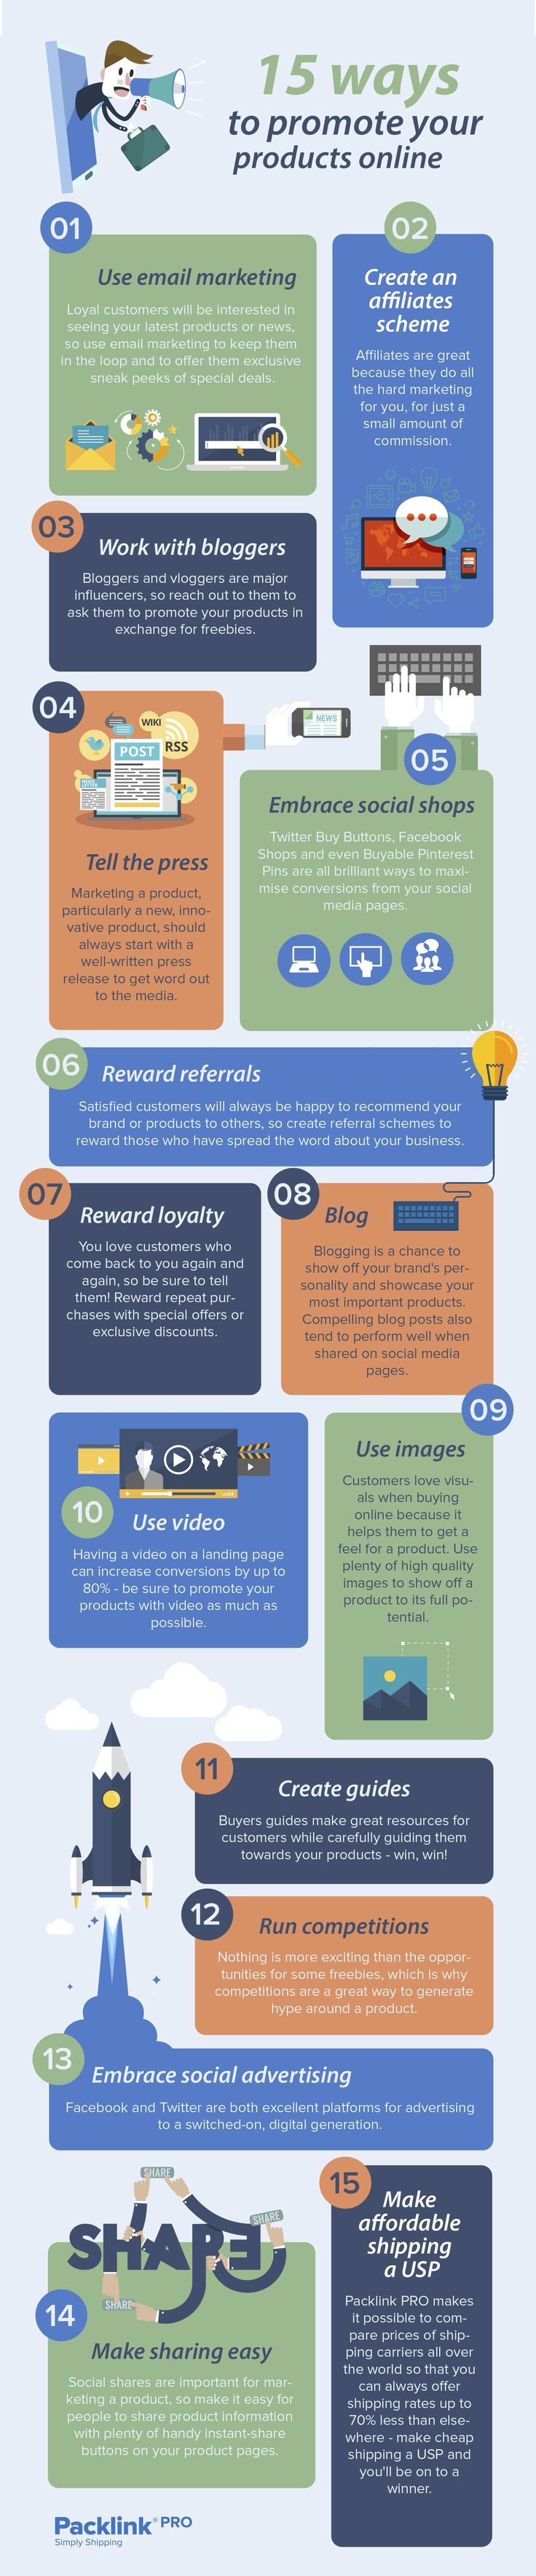 15 ways to promote your products online